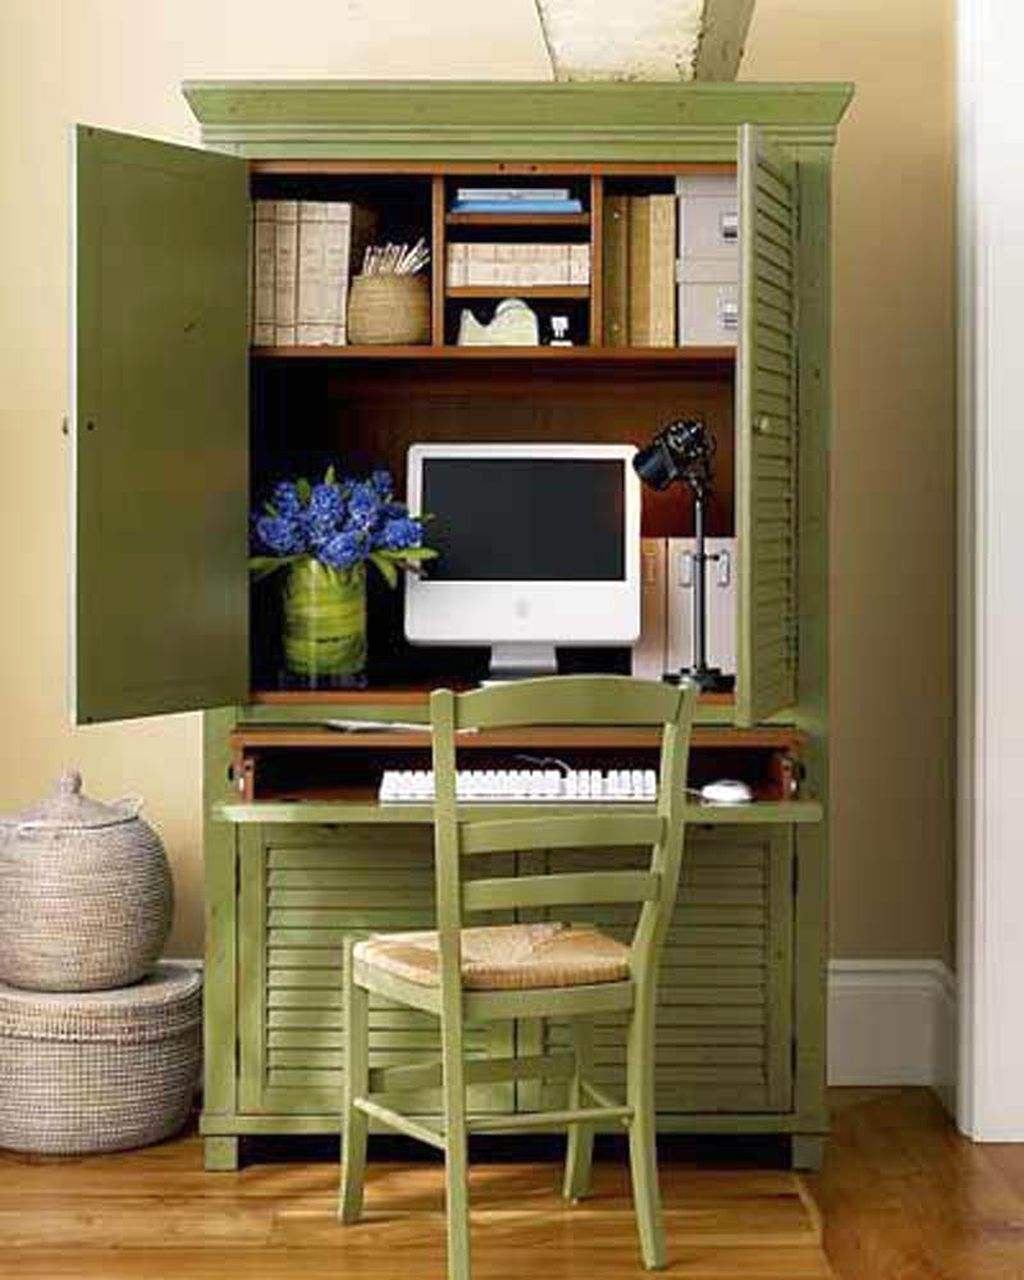 Green cupboard home office design ideas for small spaces for Home office design ideas photos